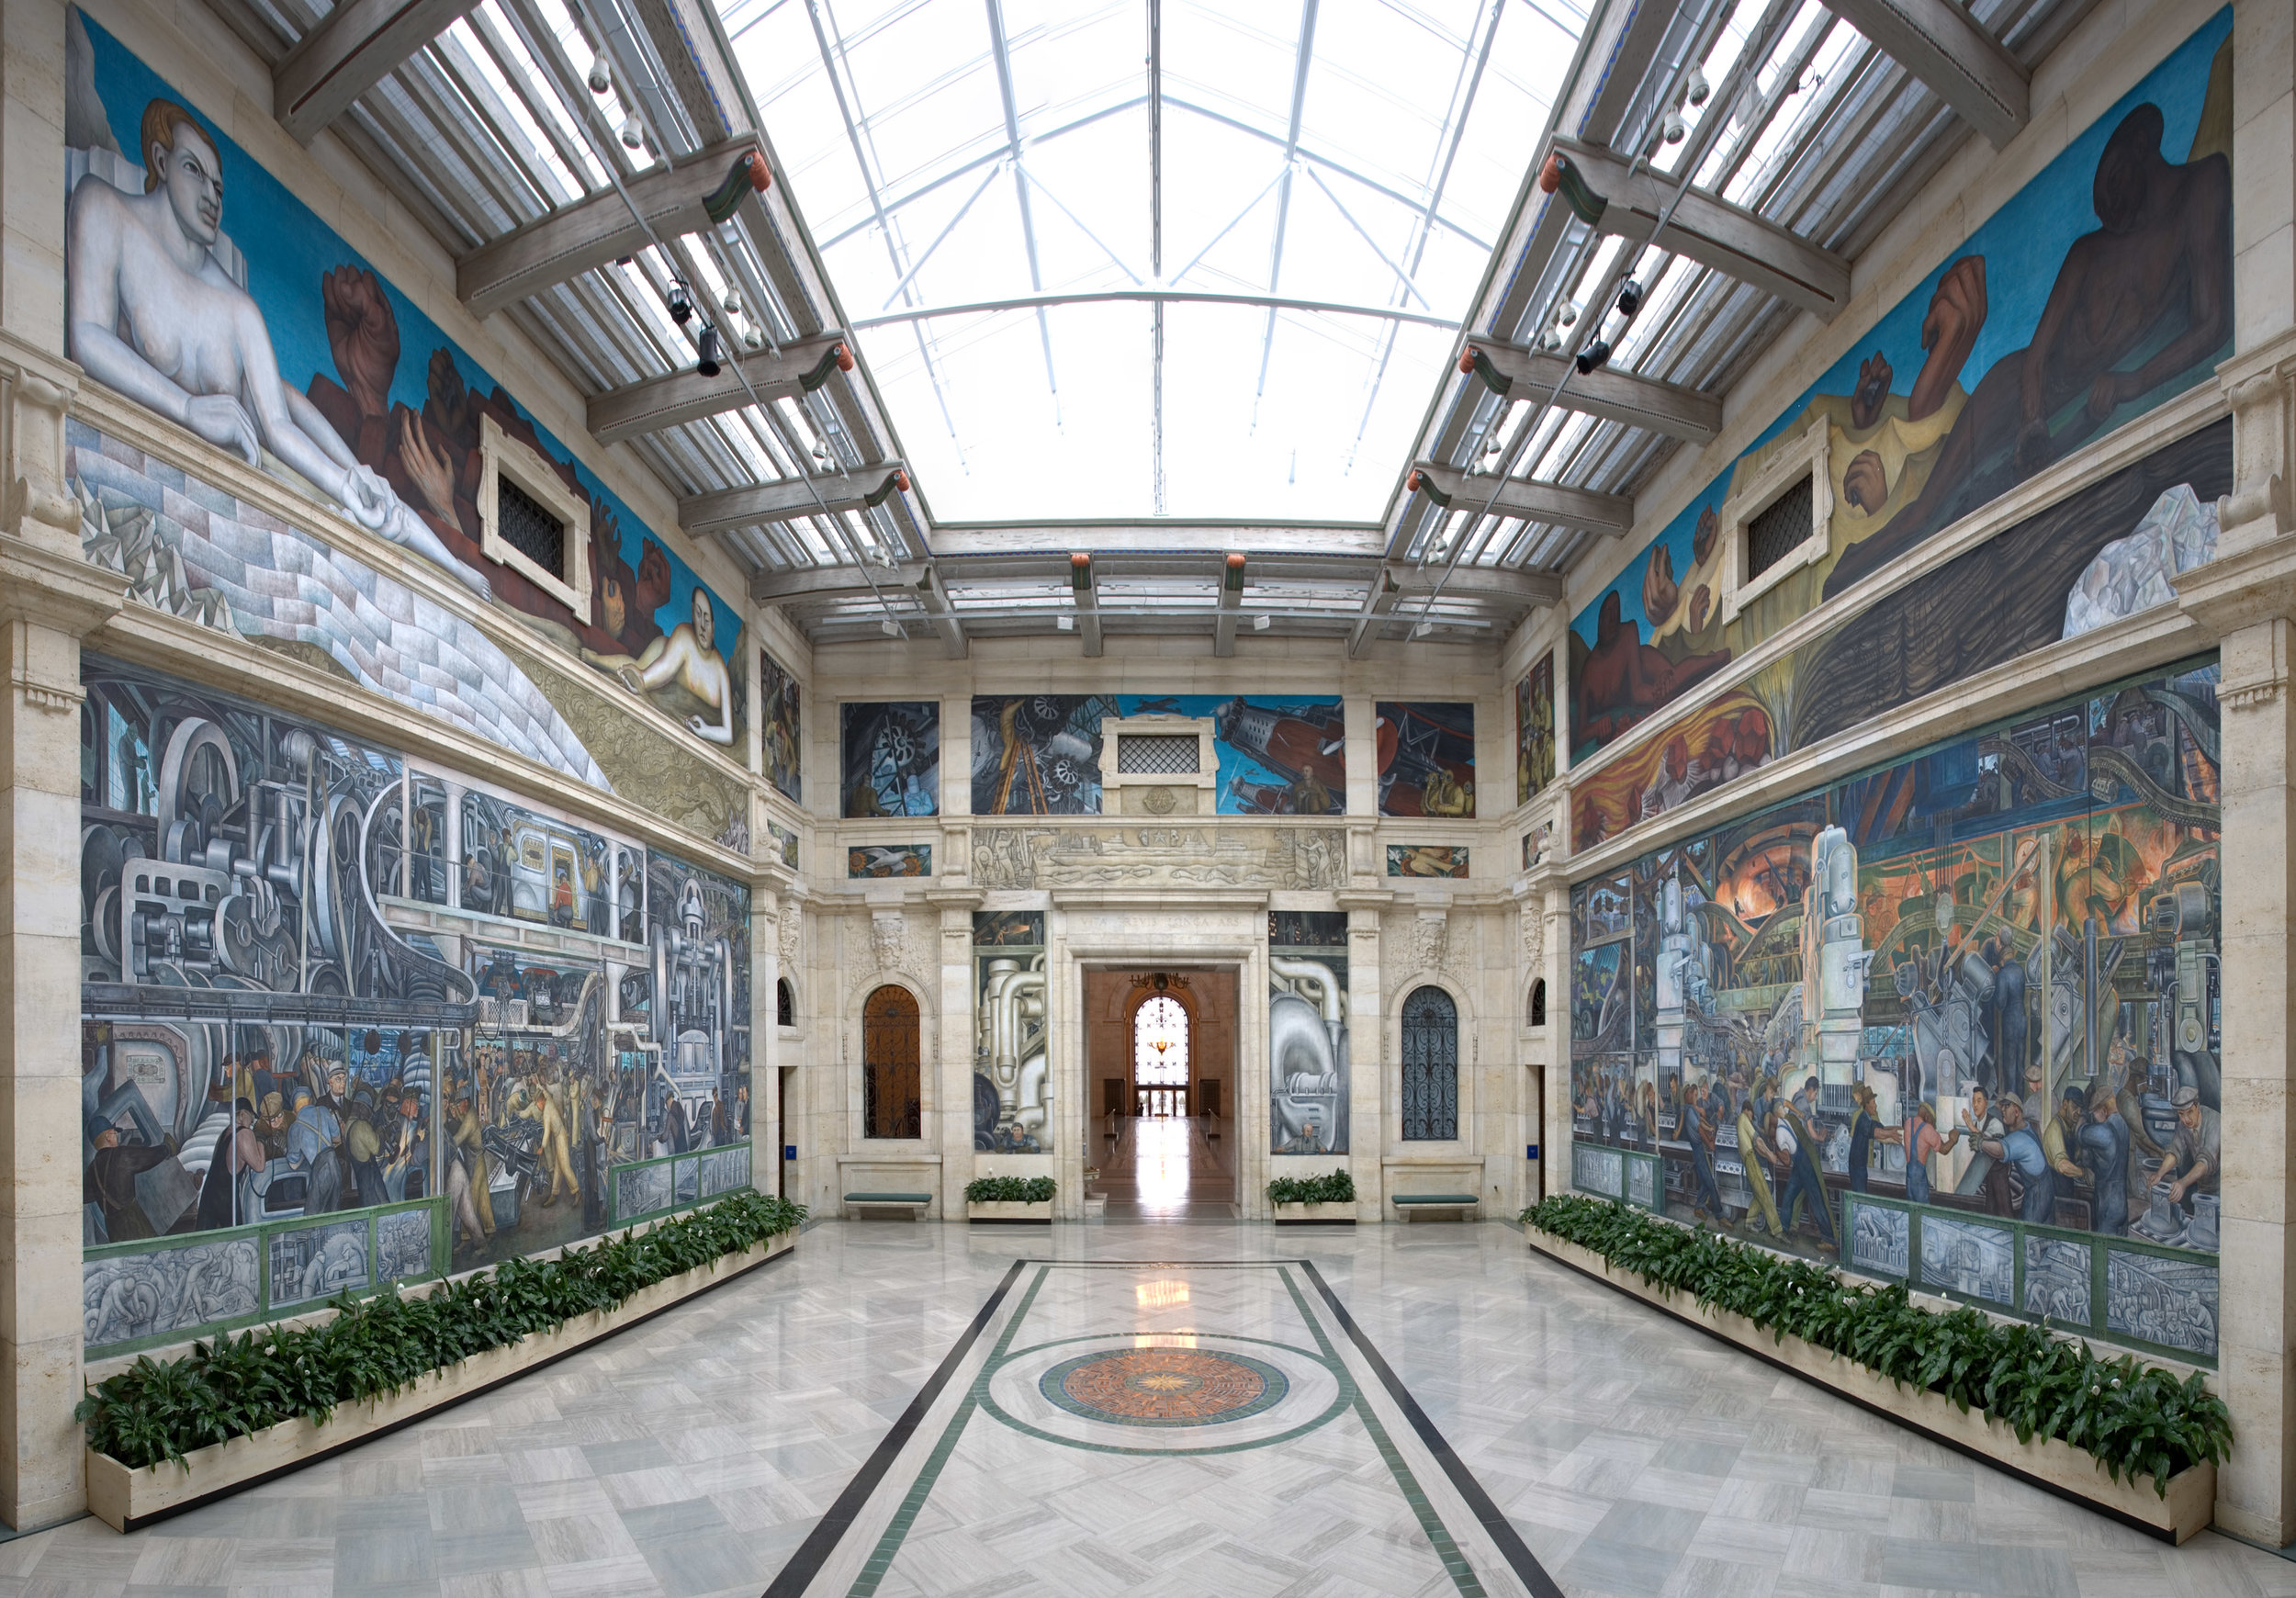 Rivera Court at the Detroit Institute of Arts | Photo Source: Detroit Institute of Arts